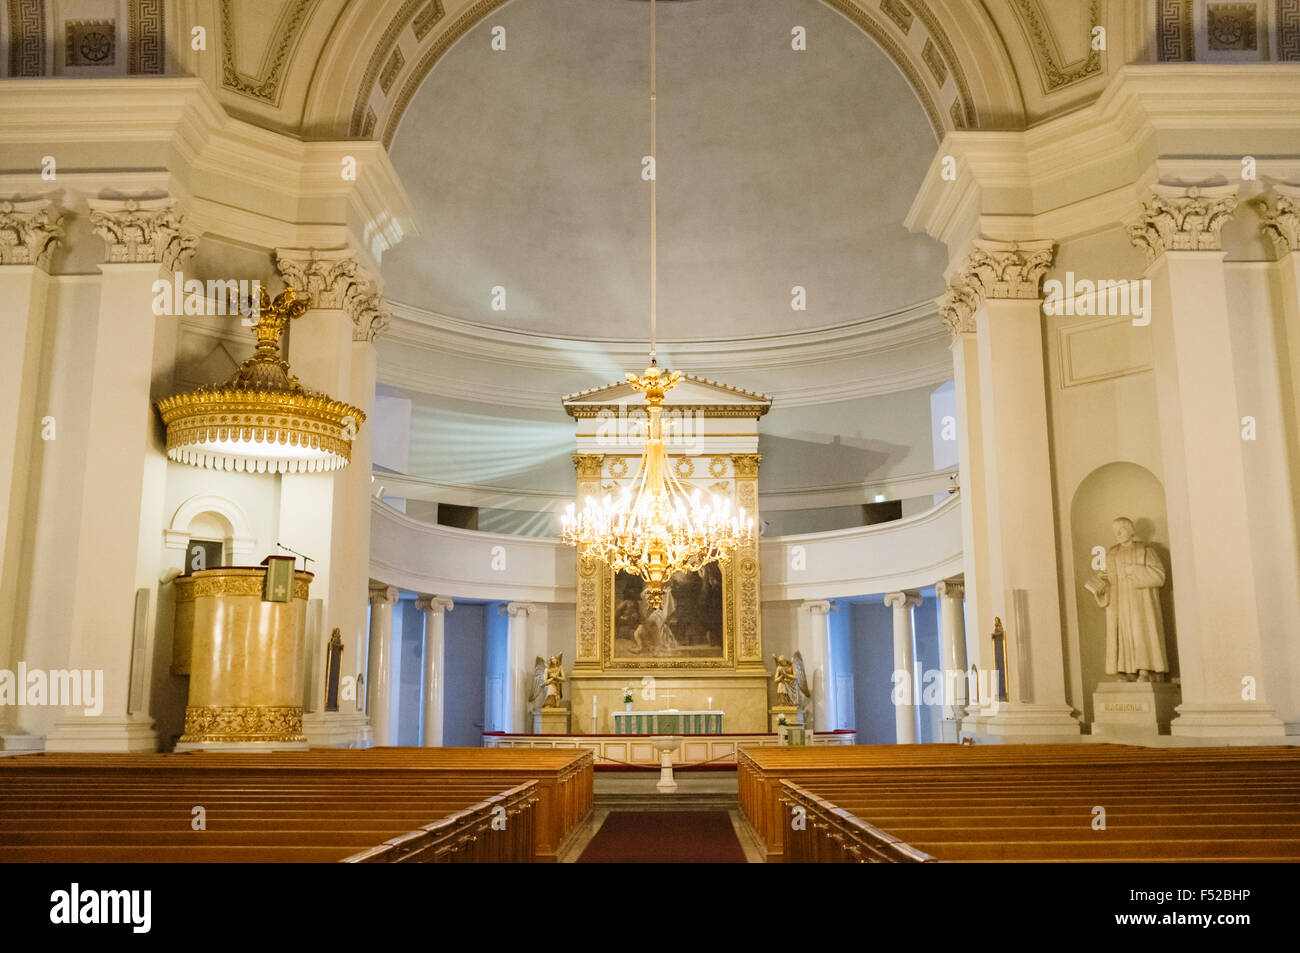 Interior of Helsinki Lutheran Cathedral, Finland - Stock Image